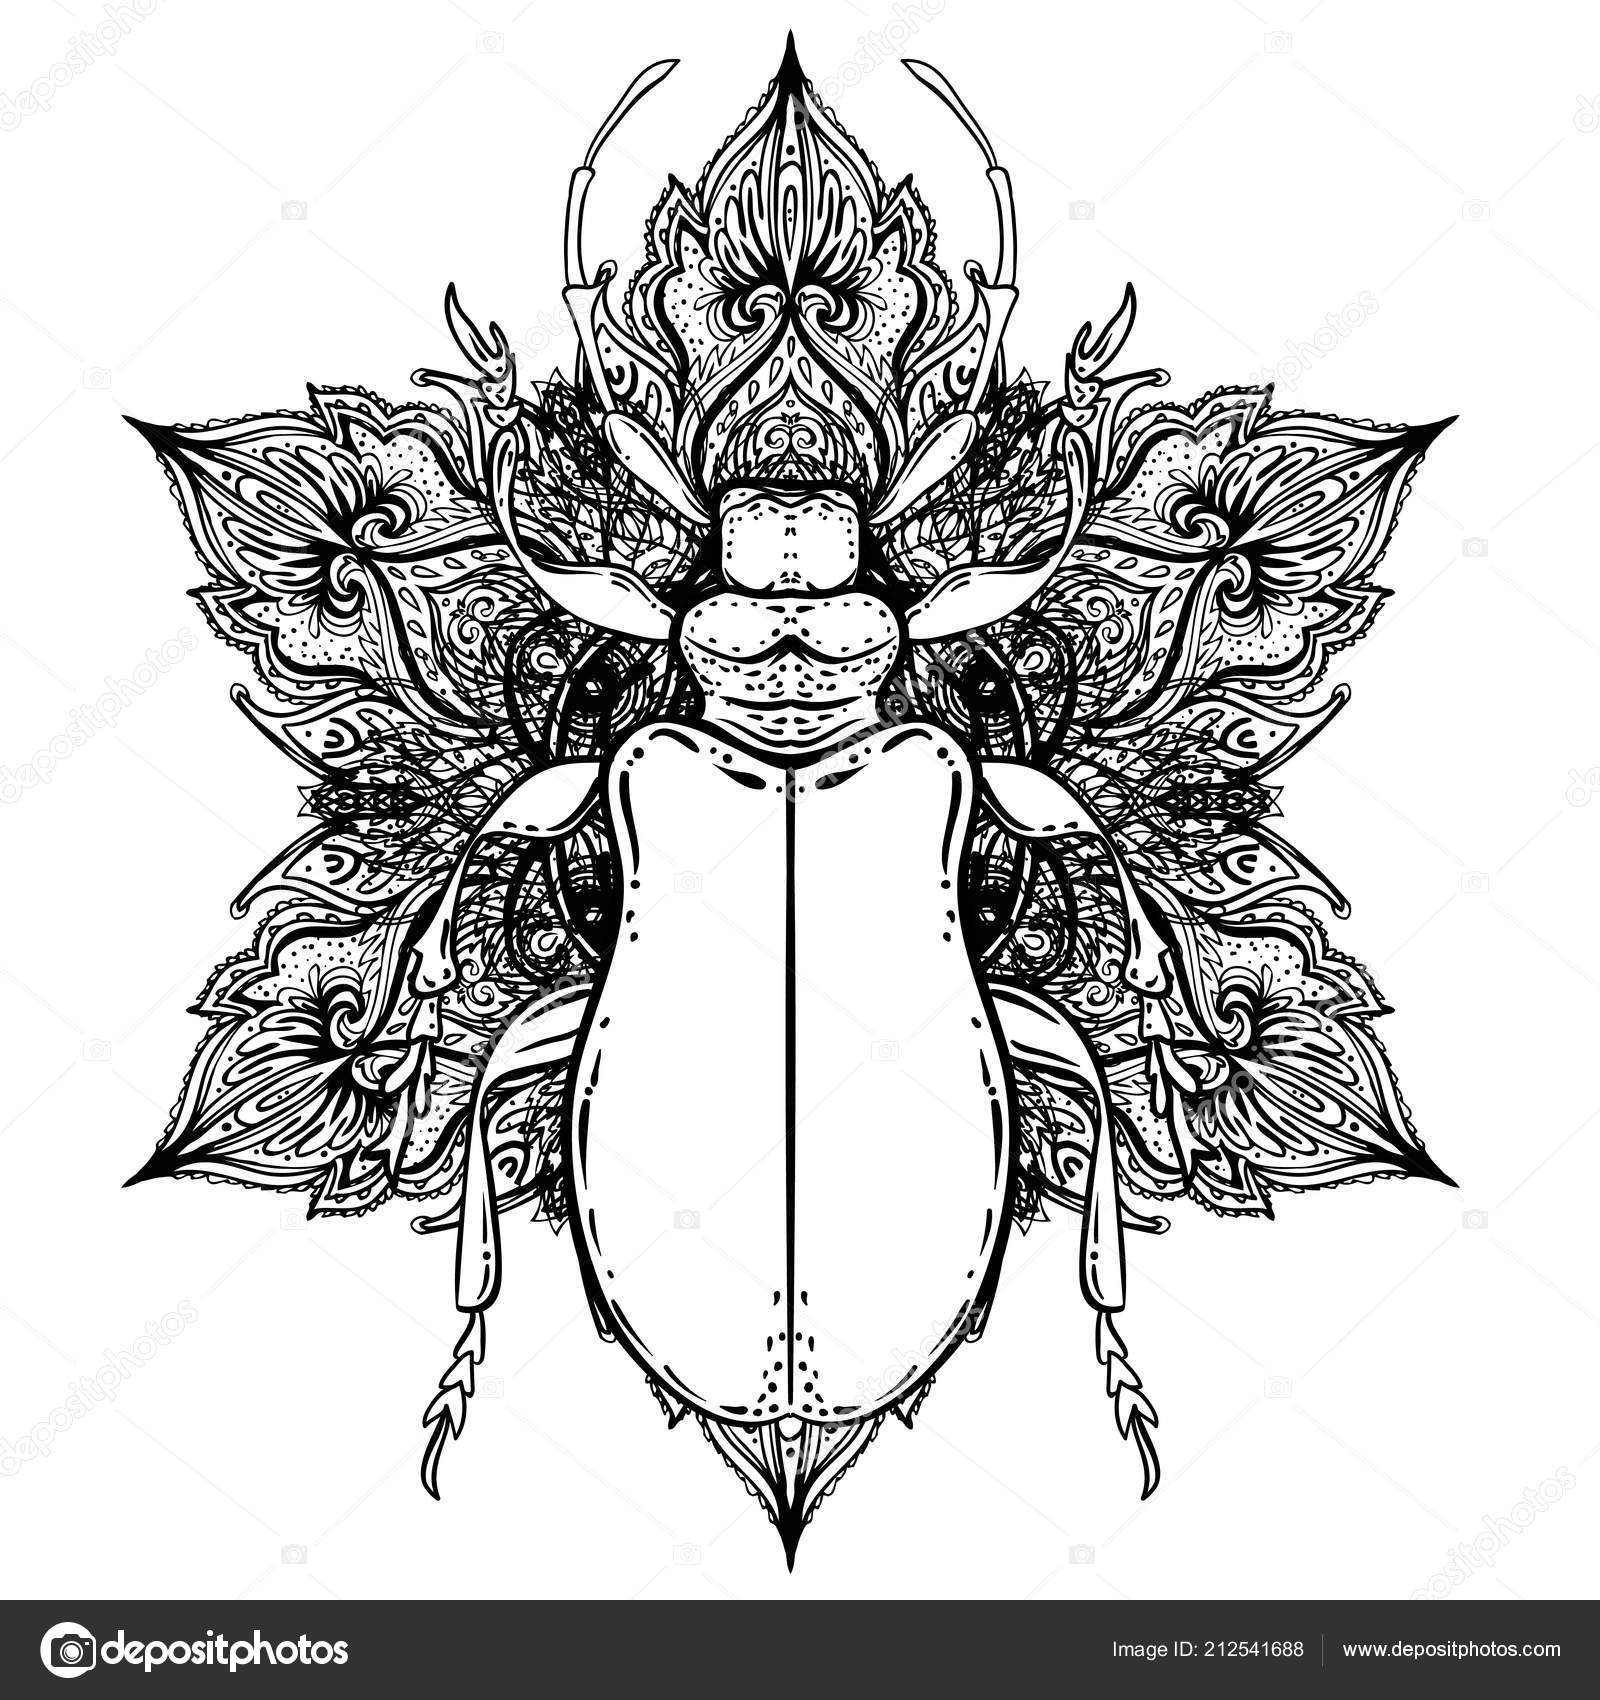 0697d2e8a Tattoo sketch. Mystical symbols and insects. Alchemy, religion, occultism,  spirituality, coloring book. Hand-drawn vintage. — Vector by vgorbash